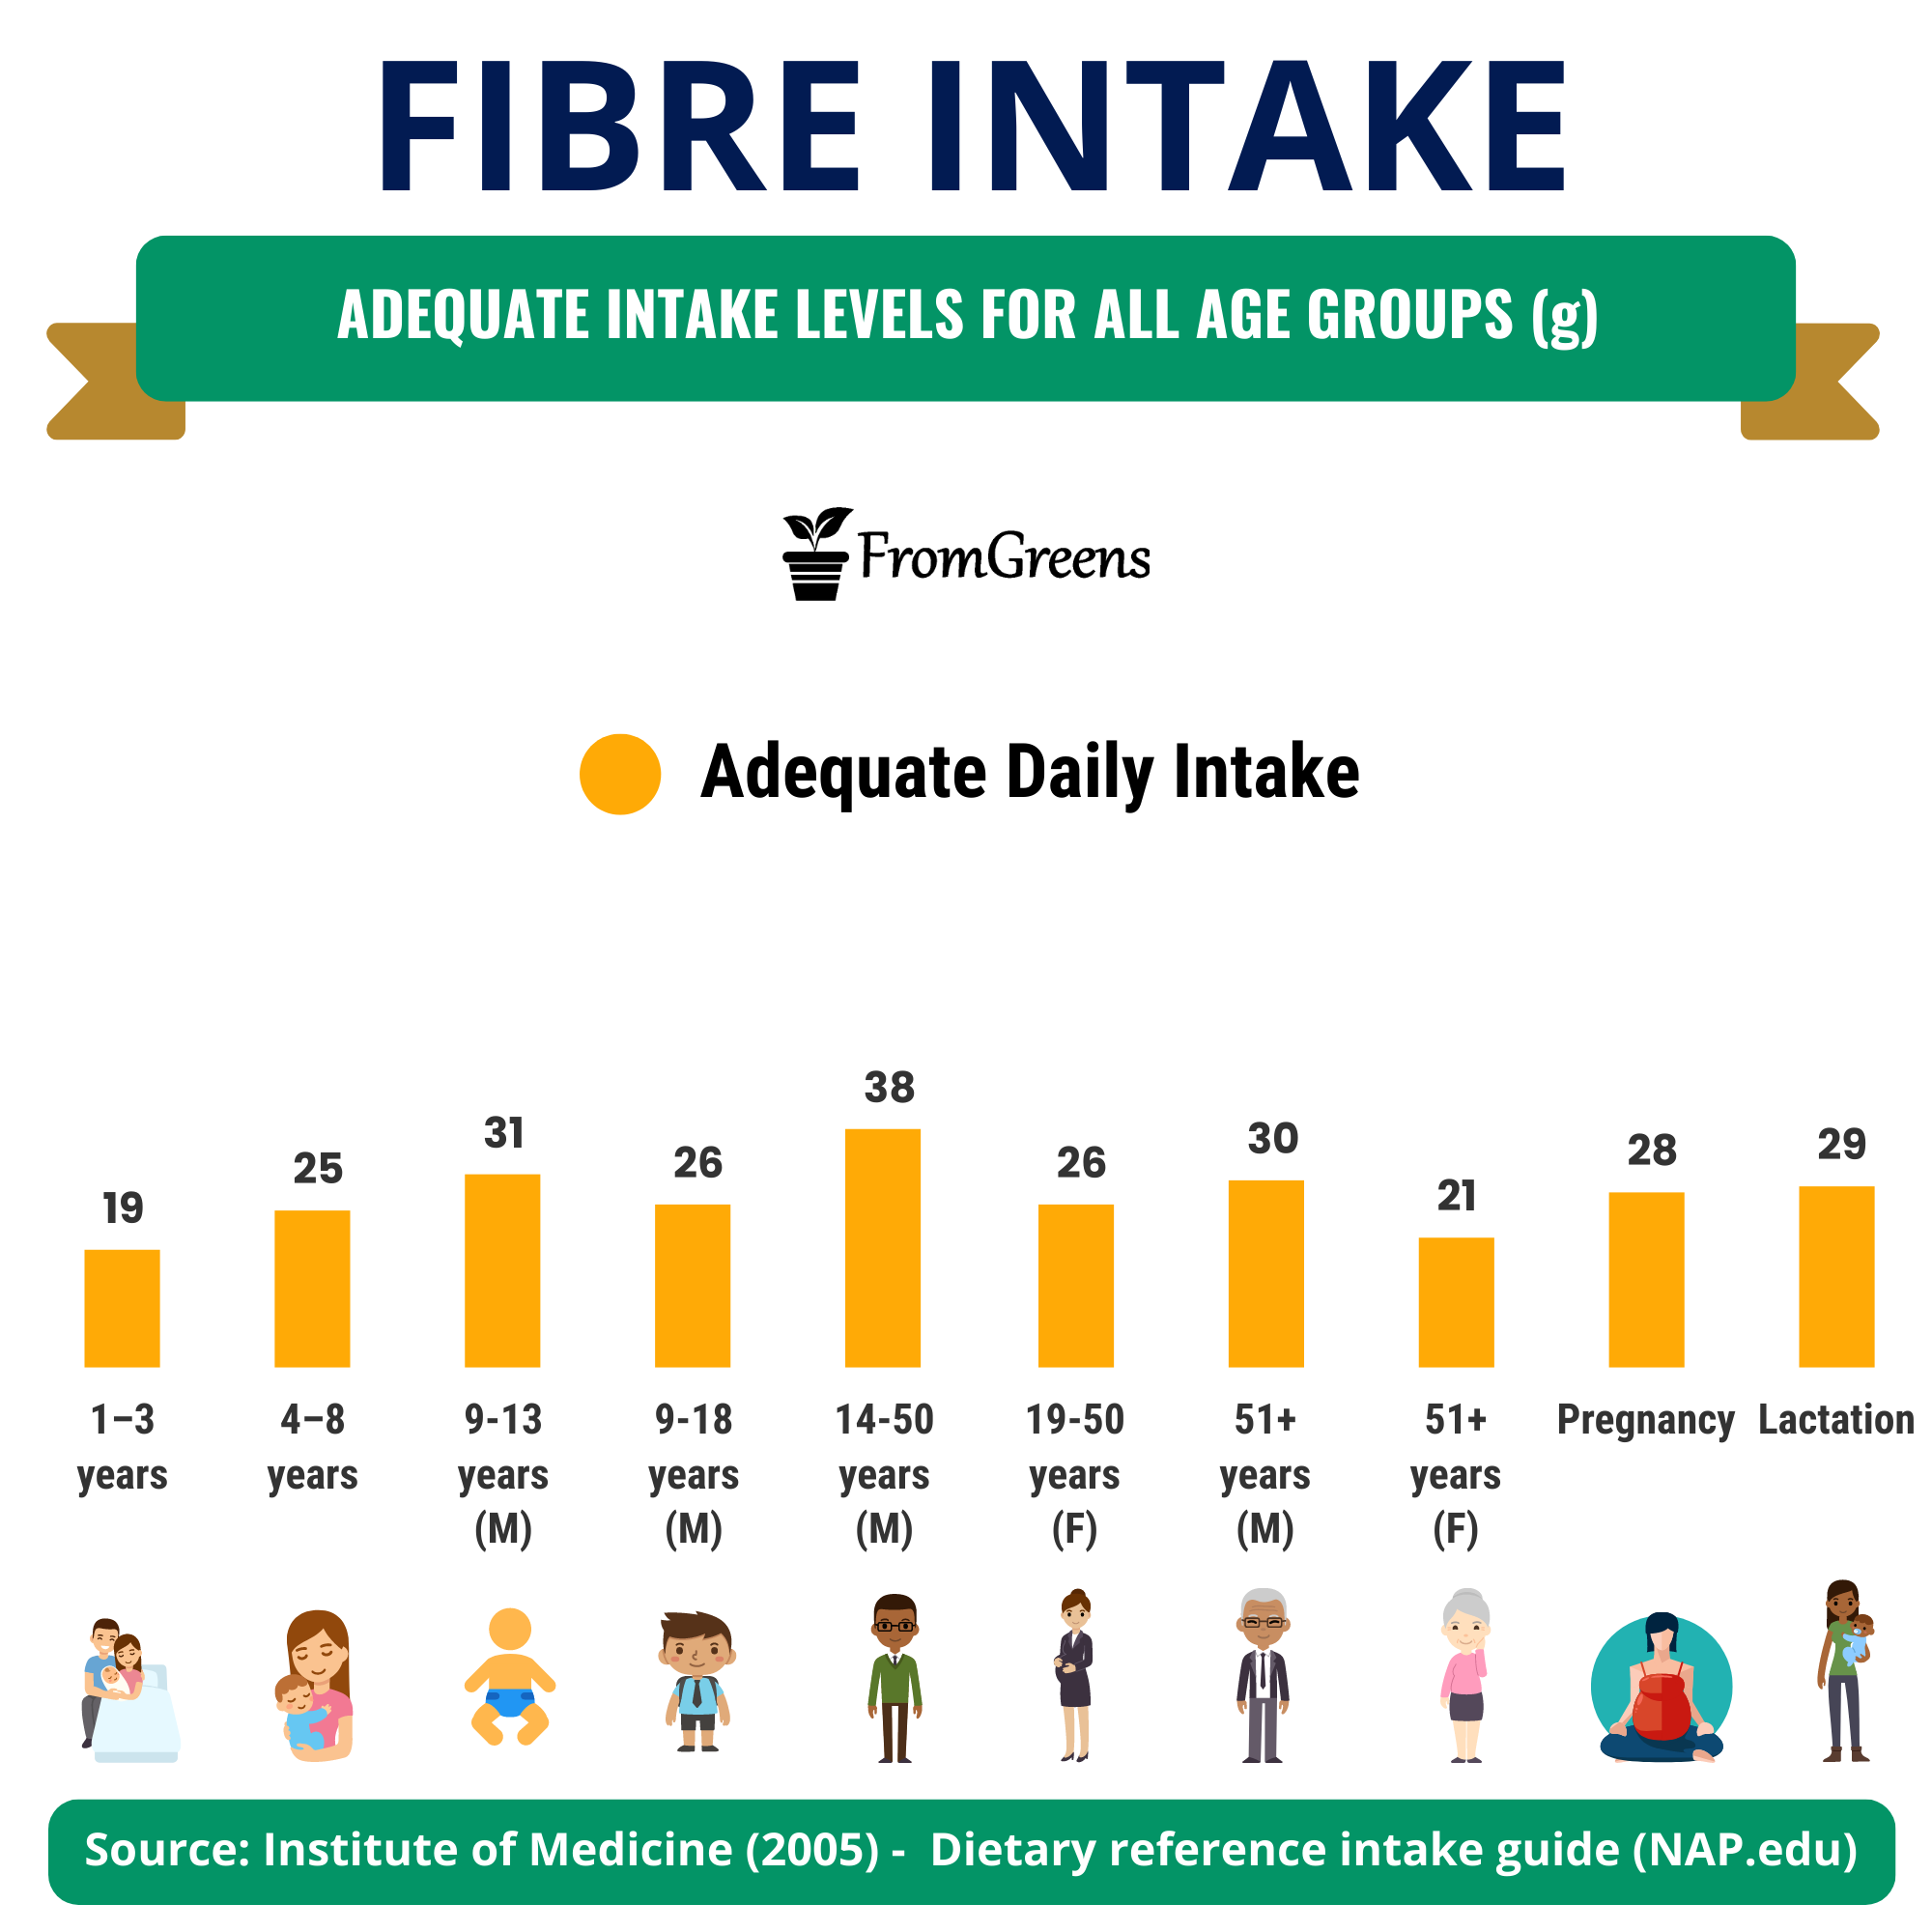 How much fibre is recommended daily